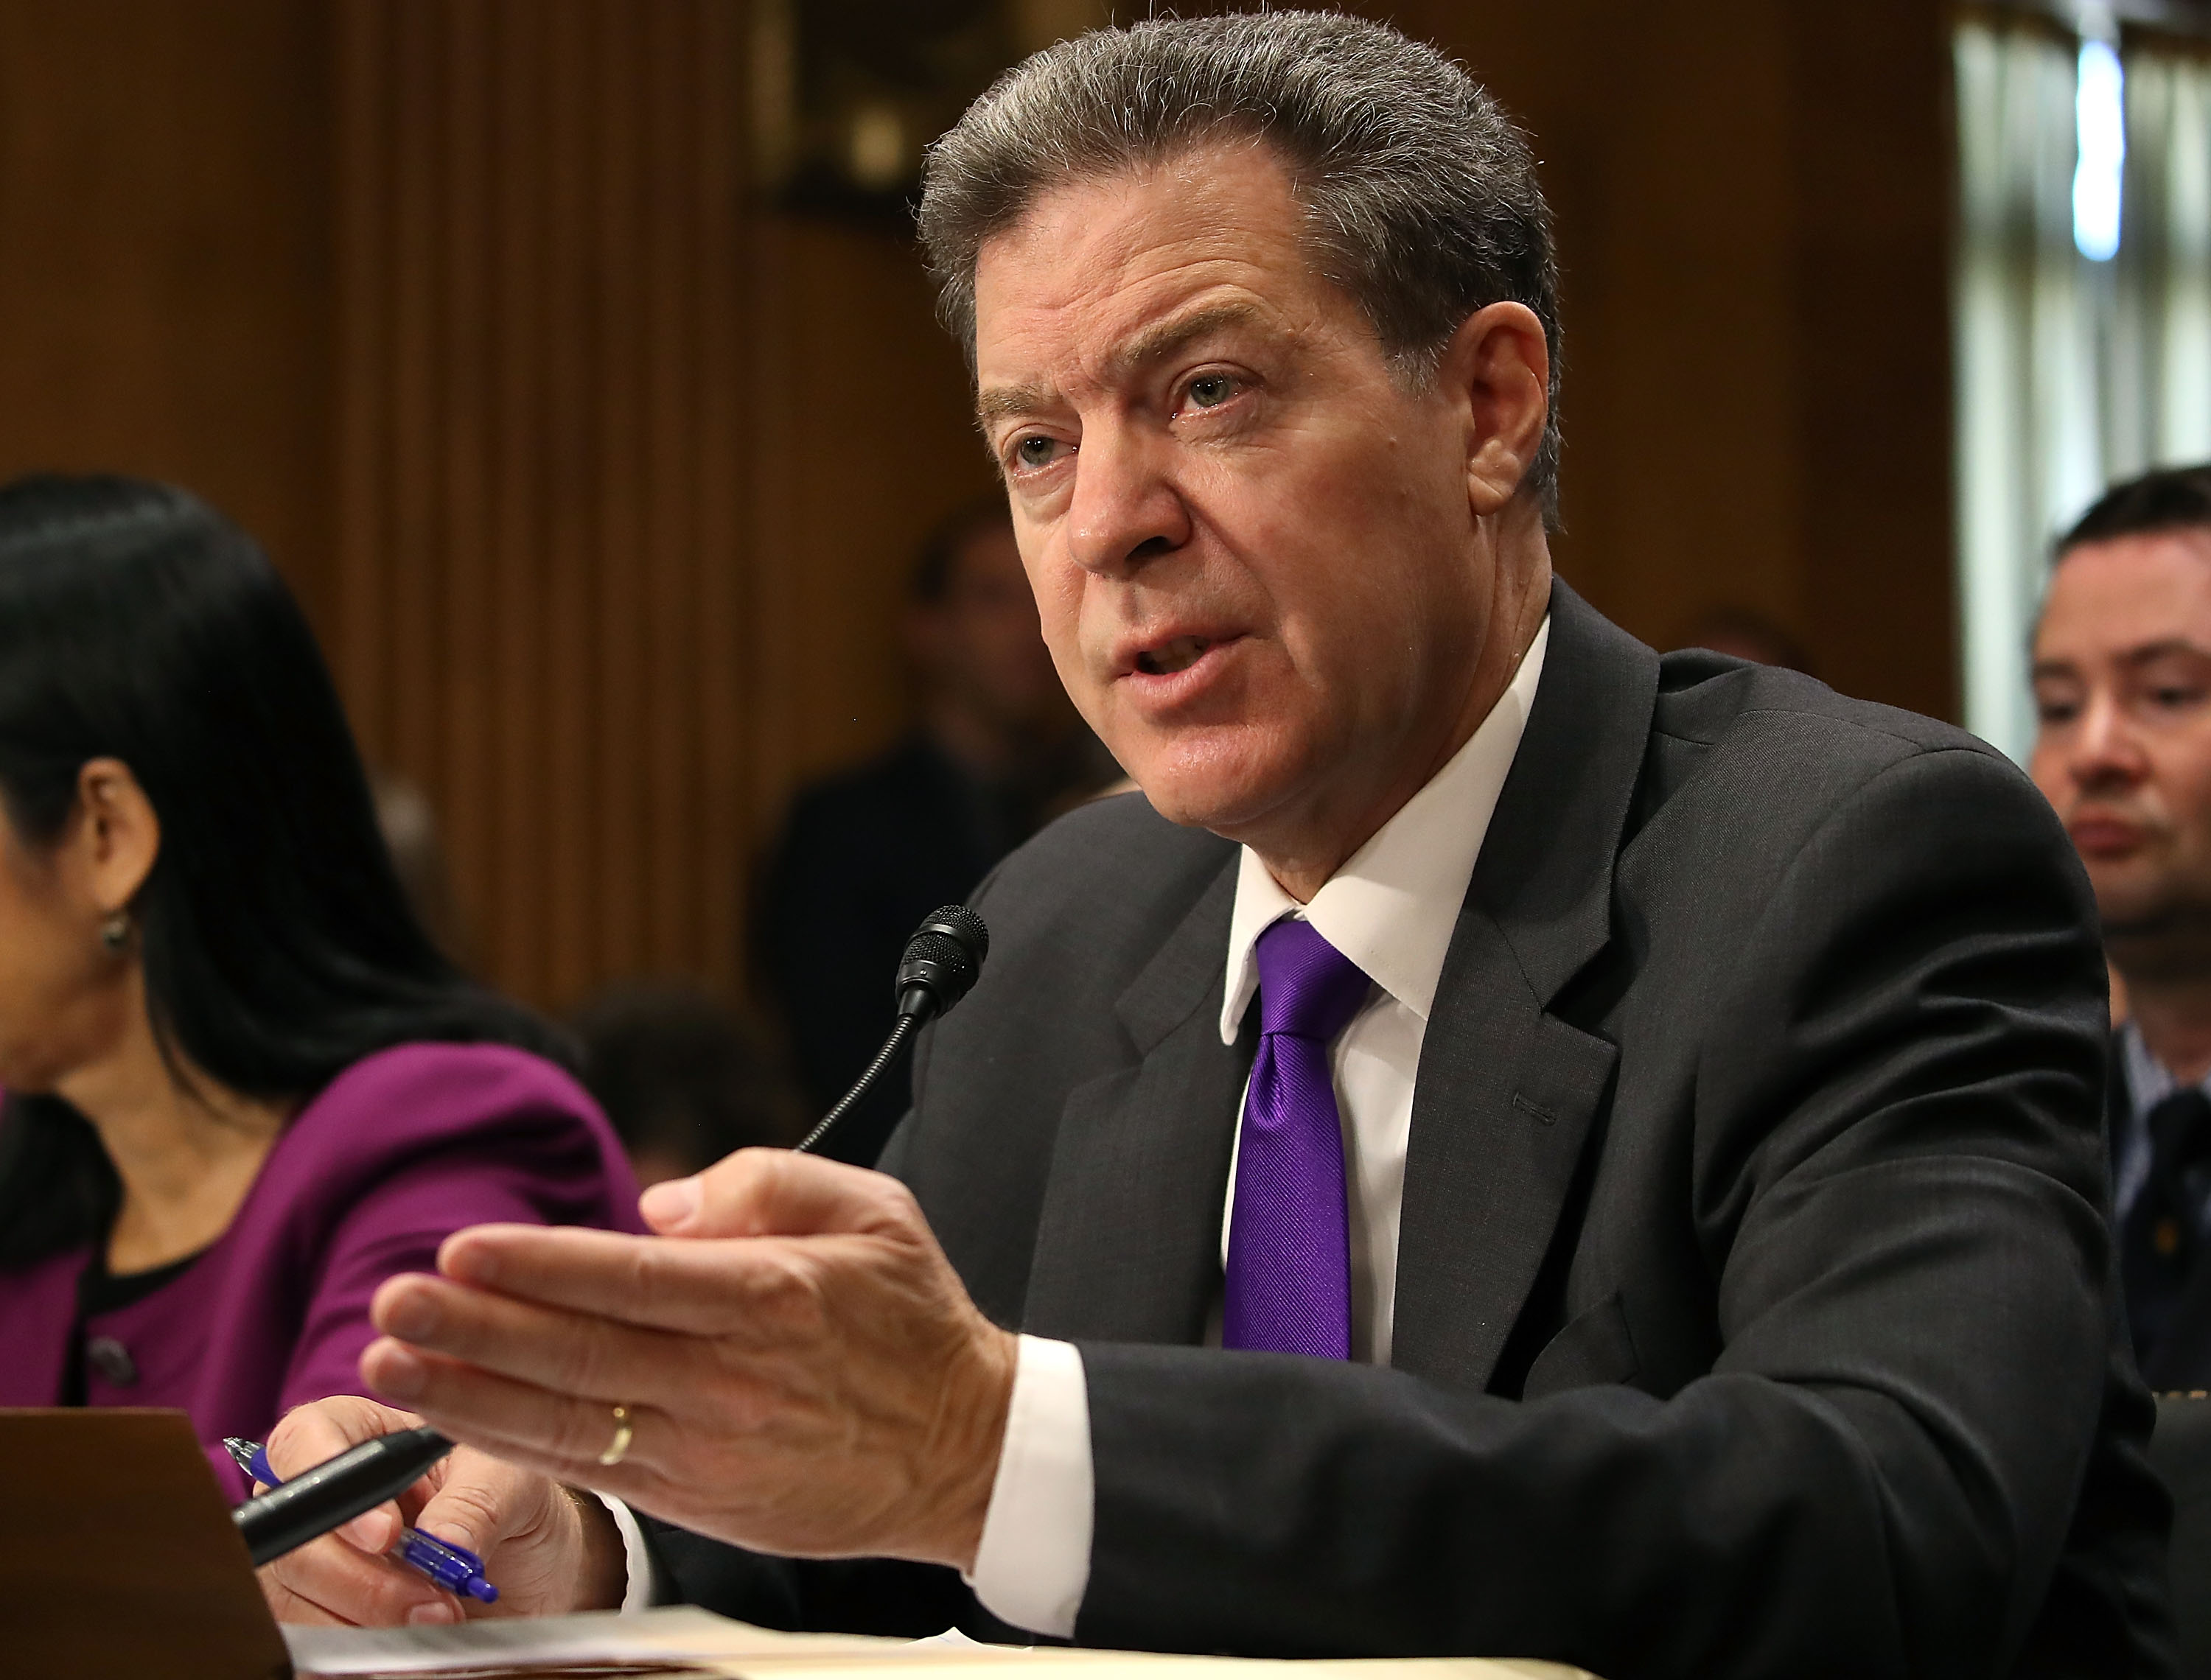 Former US Senator Samuel Dale Brownback (R-KS) testifies during his Senate Foreign Relations Committee confirmation hearing to be ambassador at large for international religious freedom, on Capitol Hill in Washington, DC on Oct. 4, 2017.